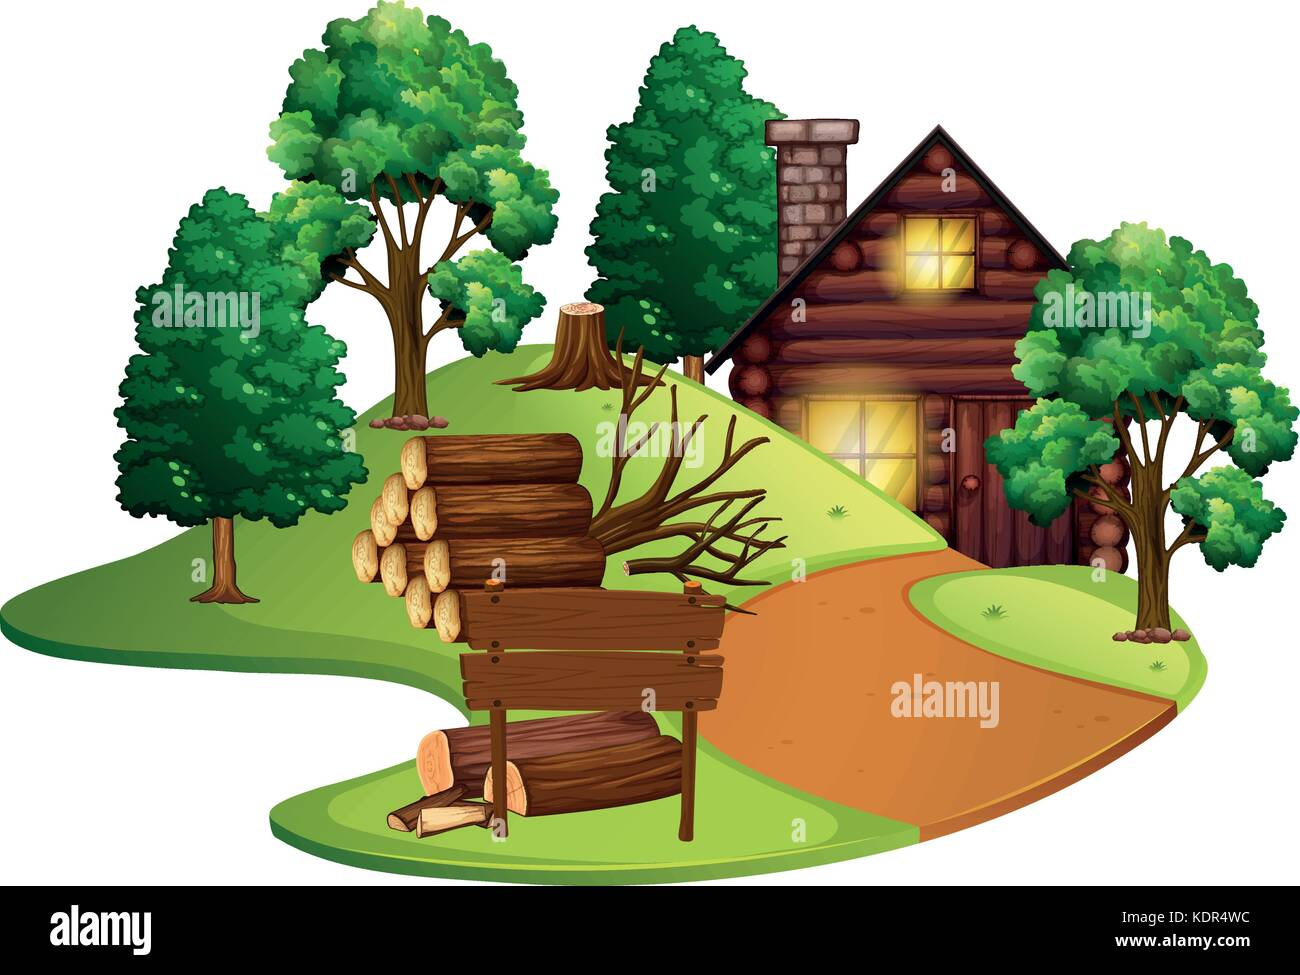 Log cabin with many trees illustration - Stock Vector